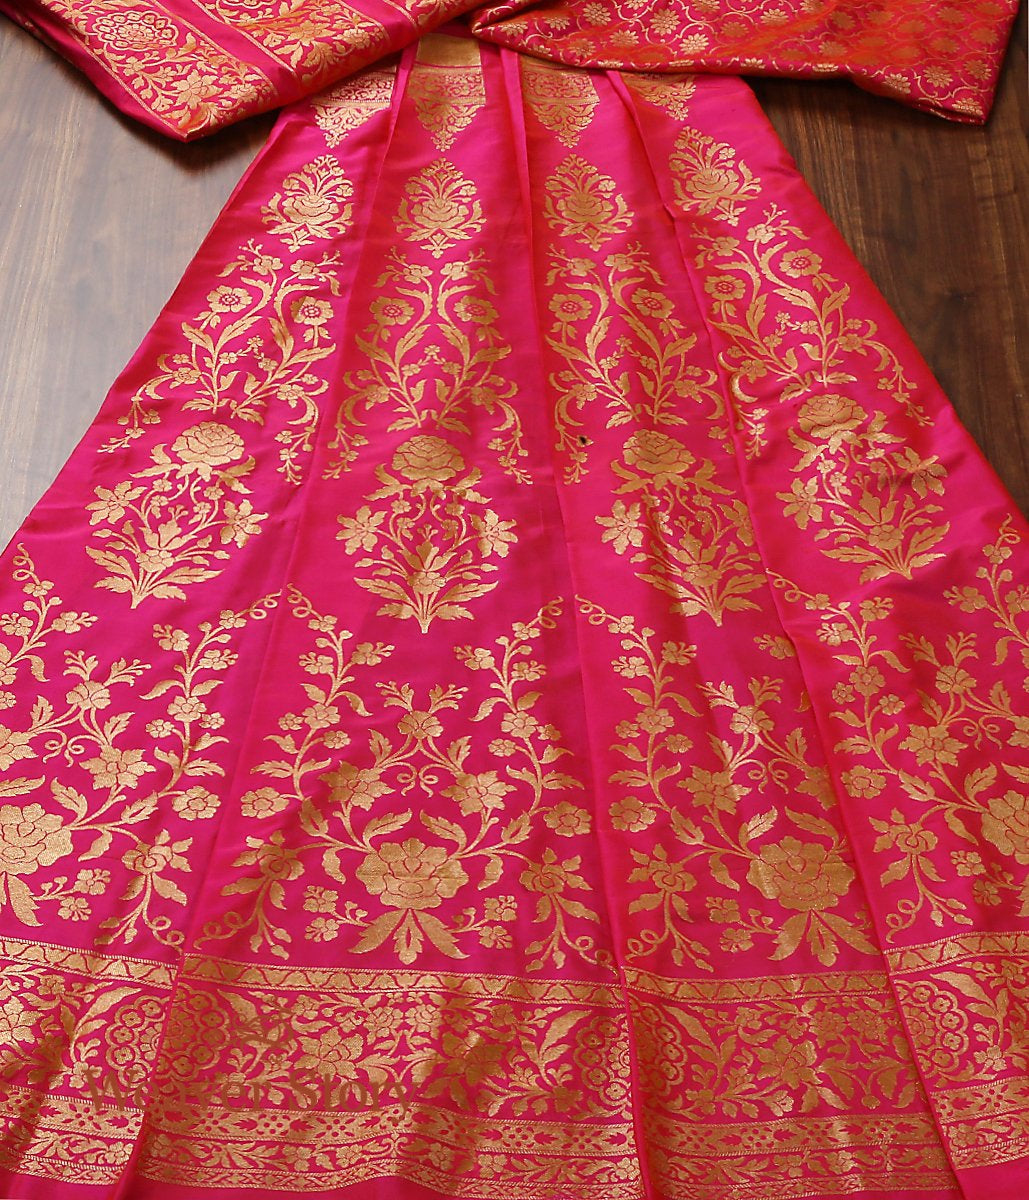 Handwoven Banarasi Hot Pink Lehenga with Gold Zari Floral Jaal